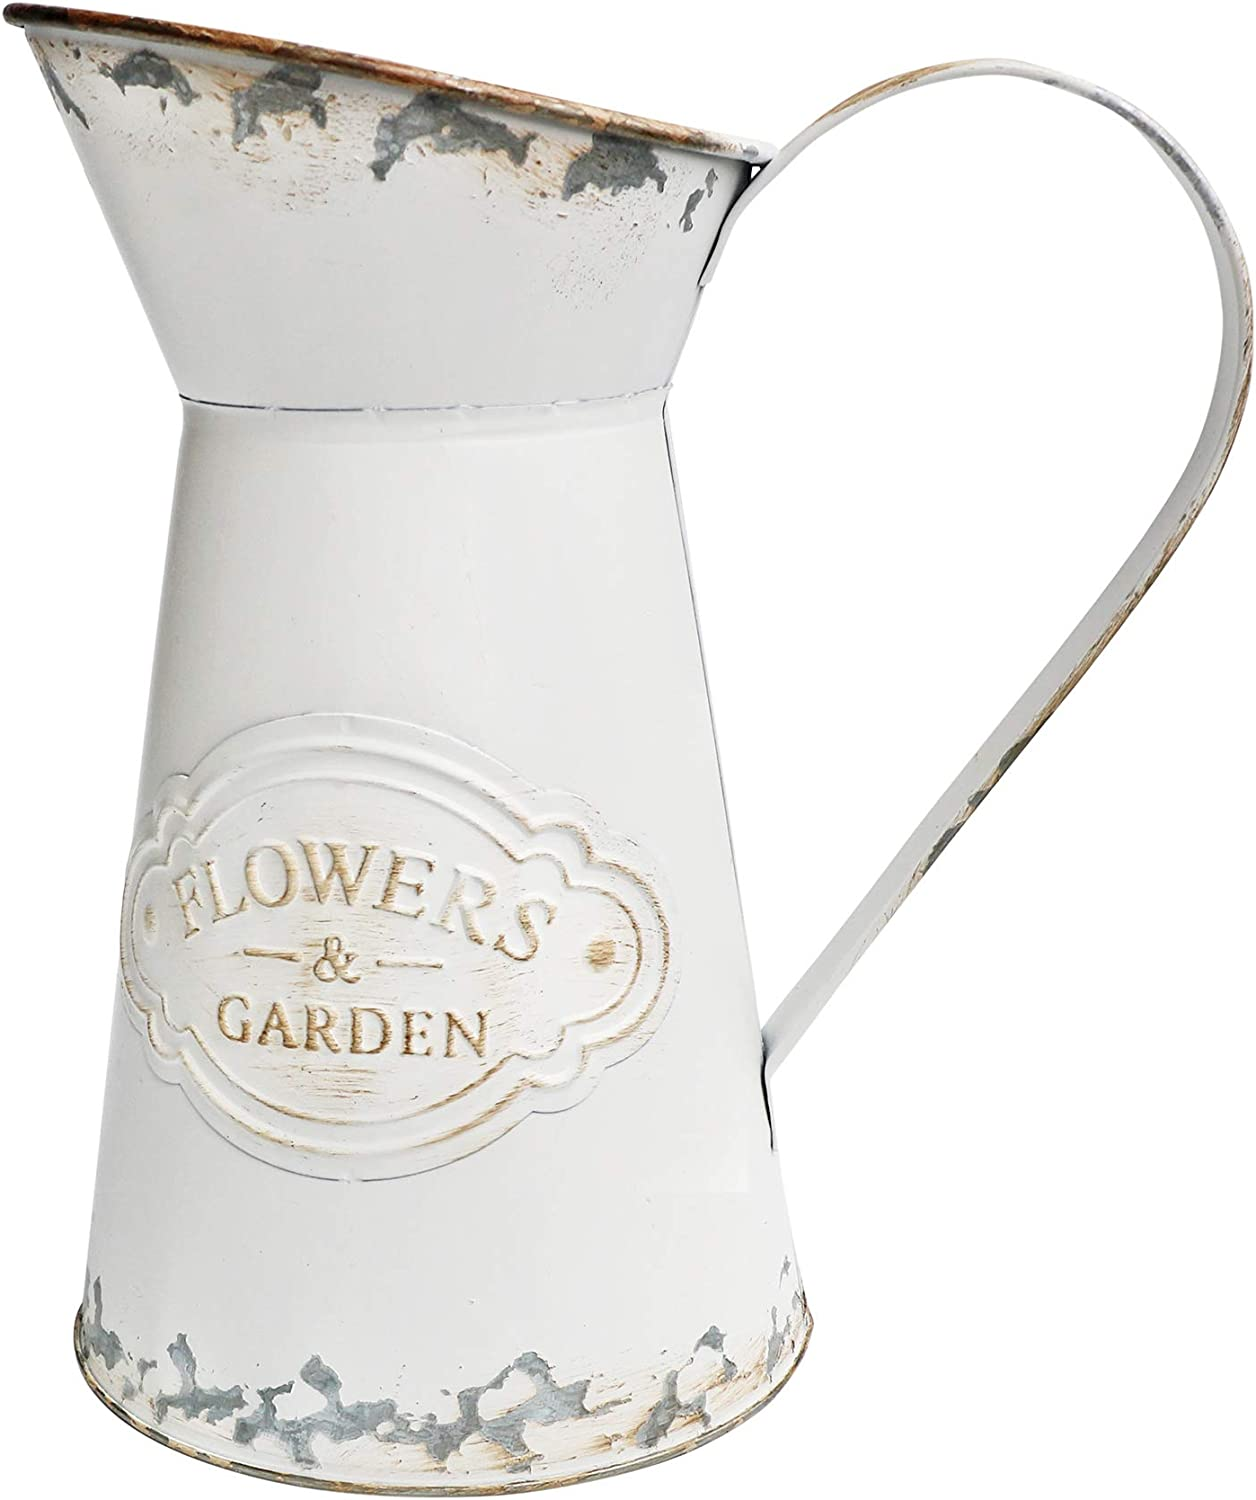 VANCORE Shabby Chic Style White Metal Vase Mini Milk Can Jug Rustic Pitcher Flower Holder